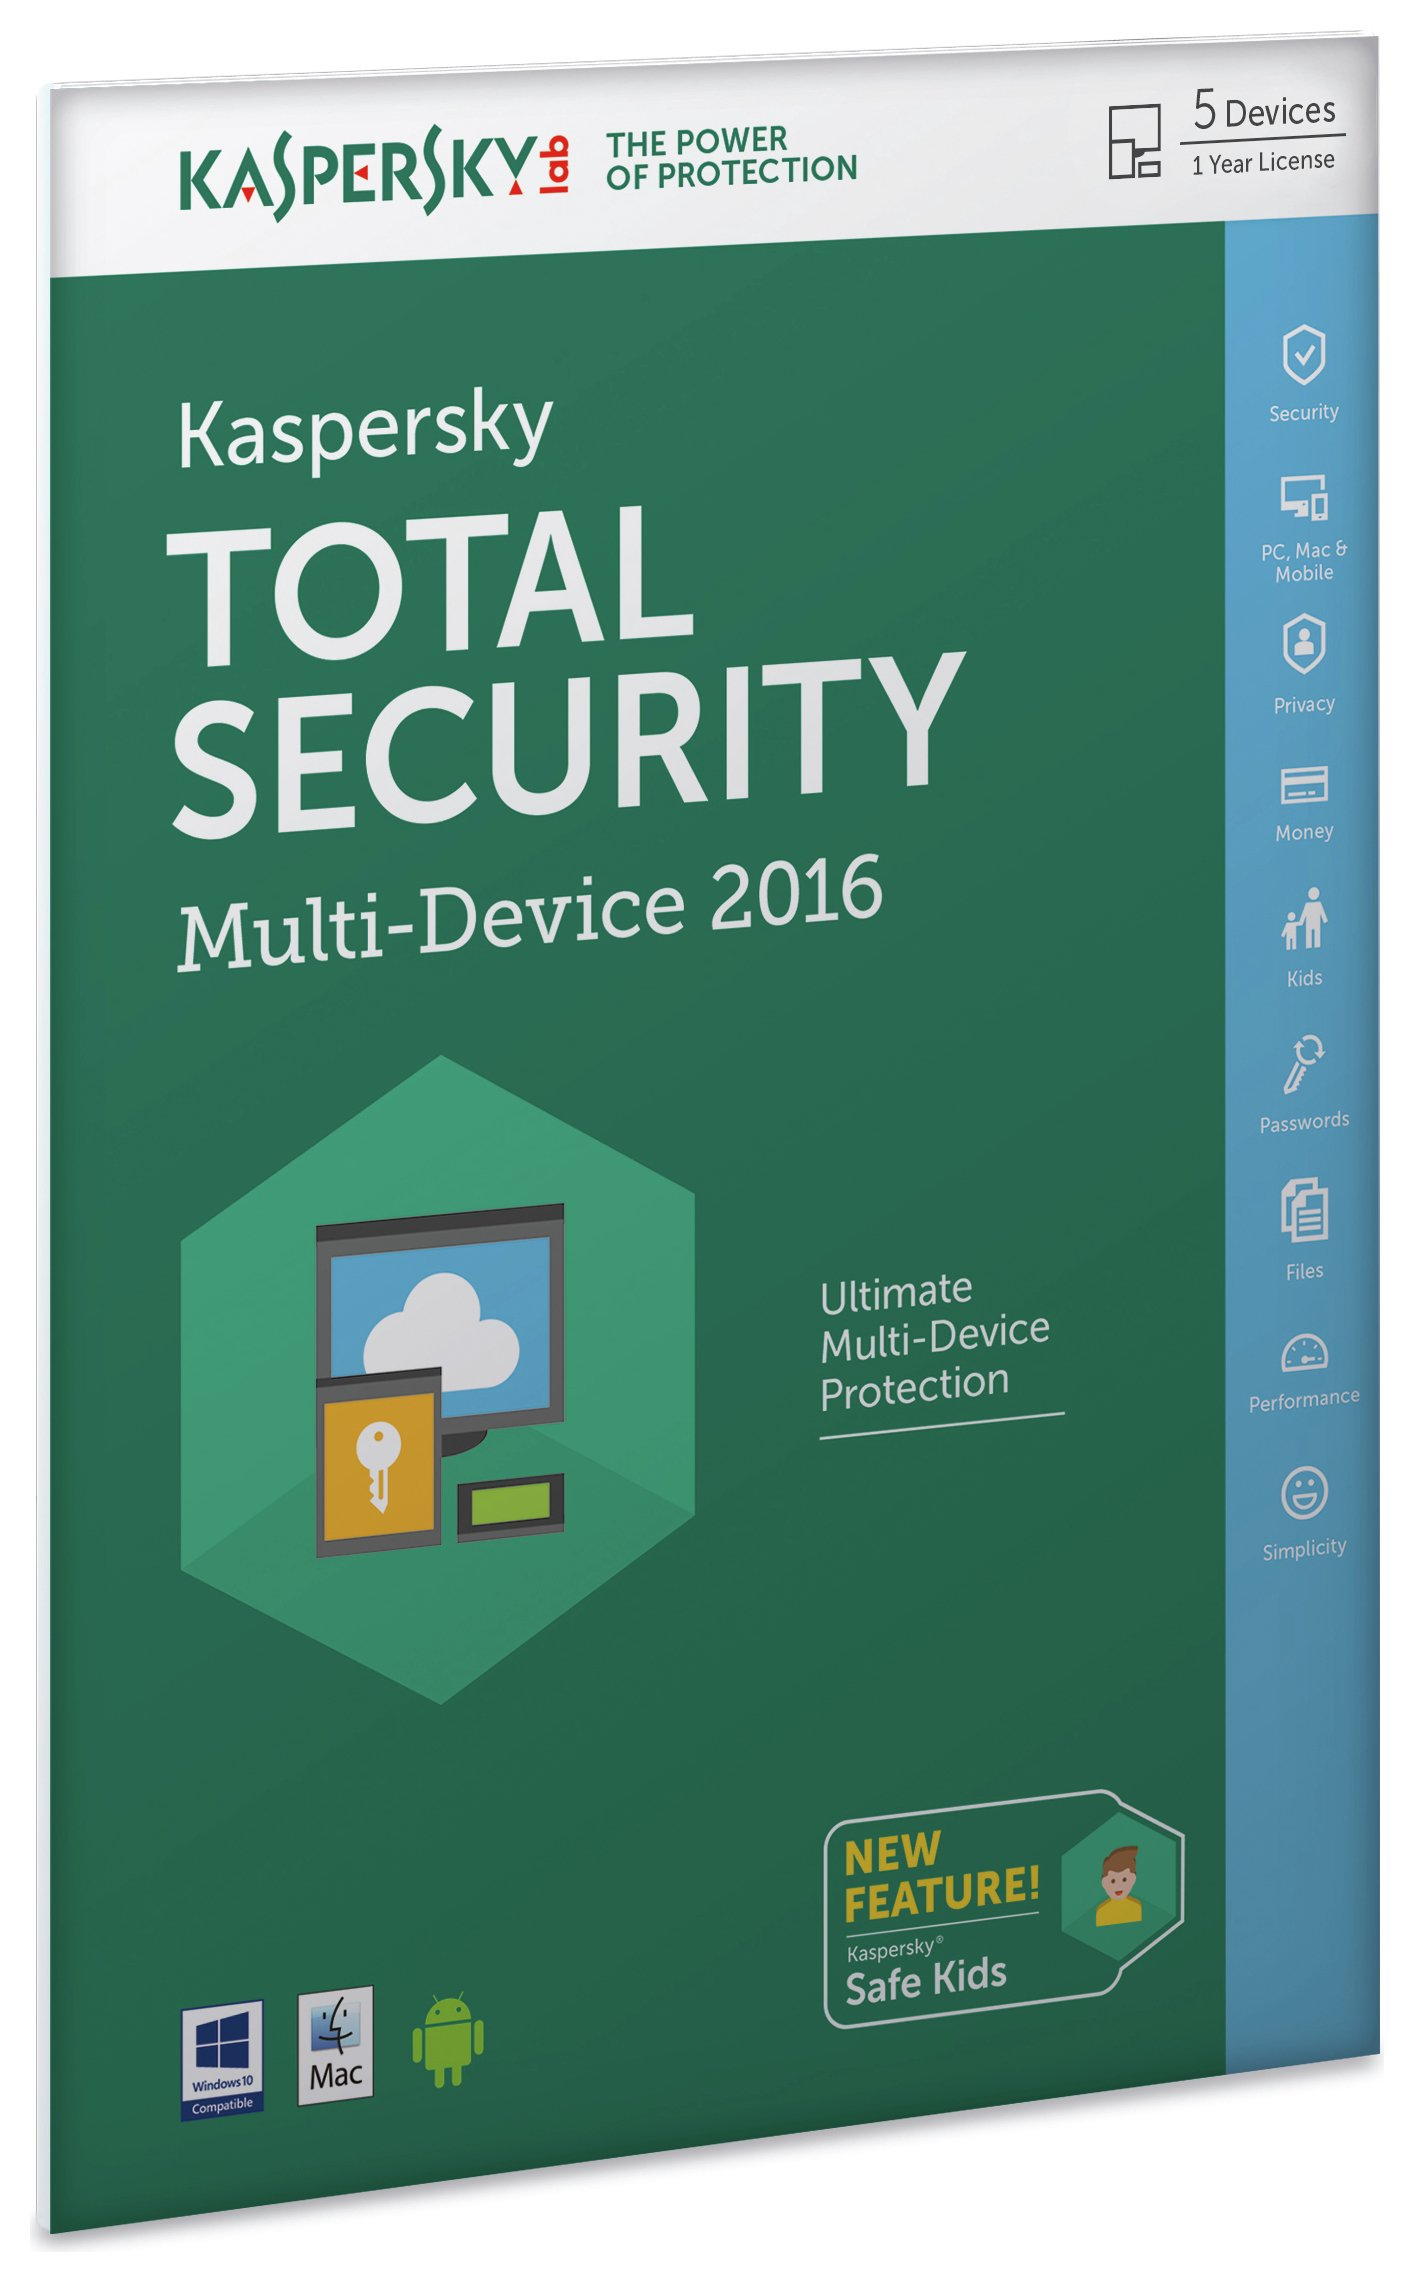 Image of Kaspersky TS 2016 1 Year 5 Device Internet Security.